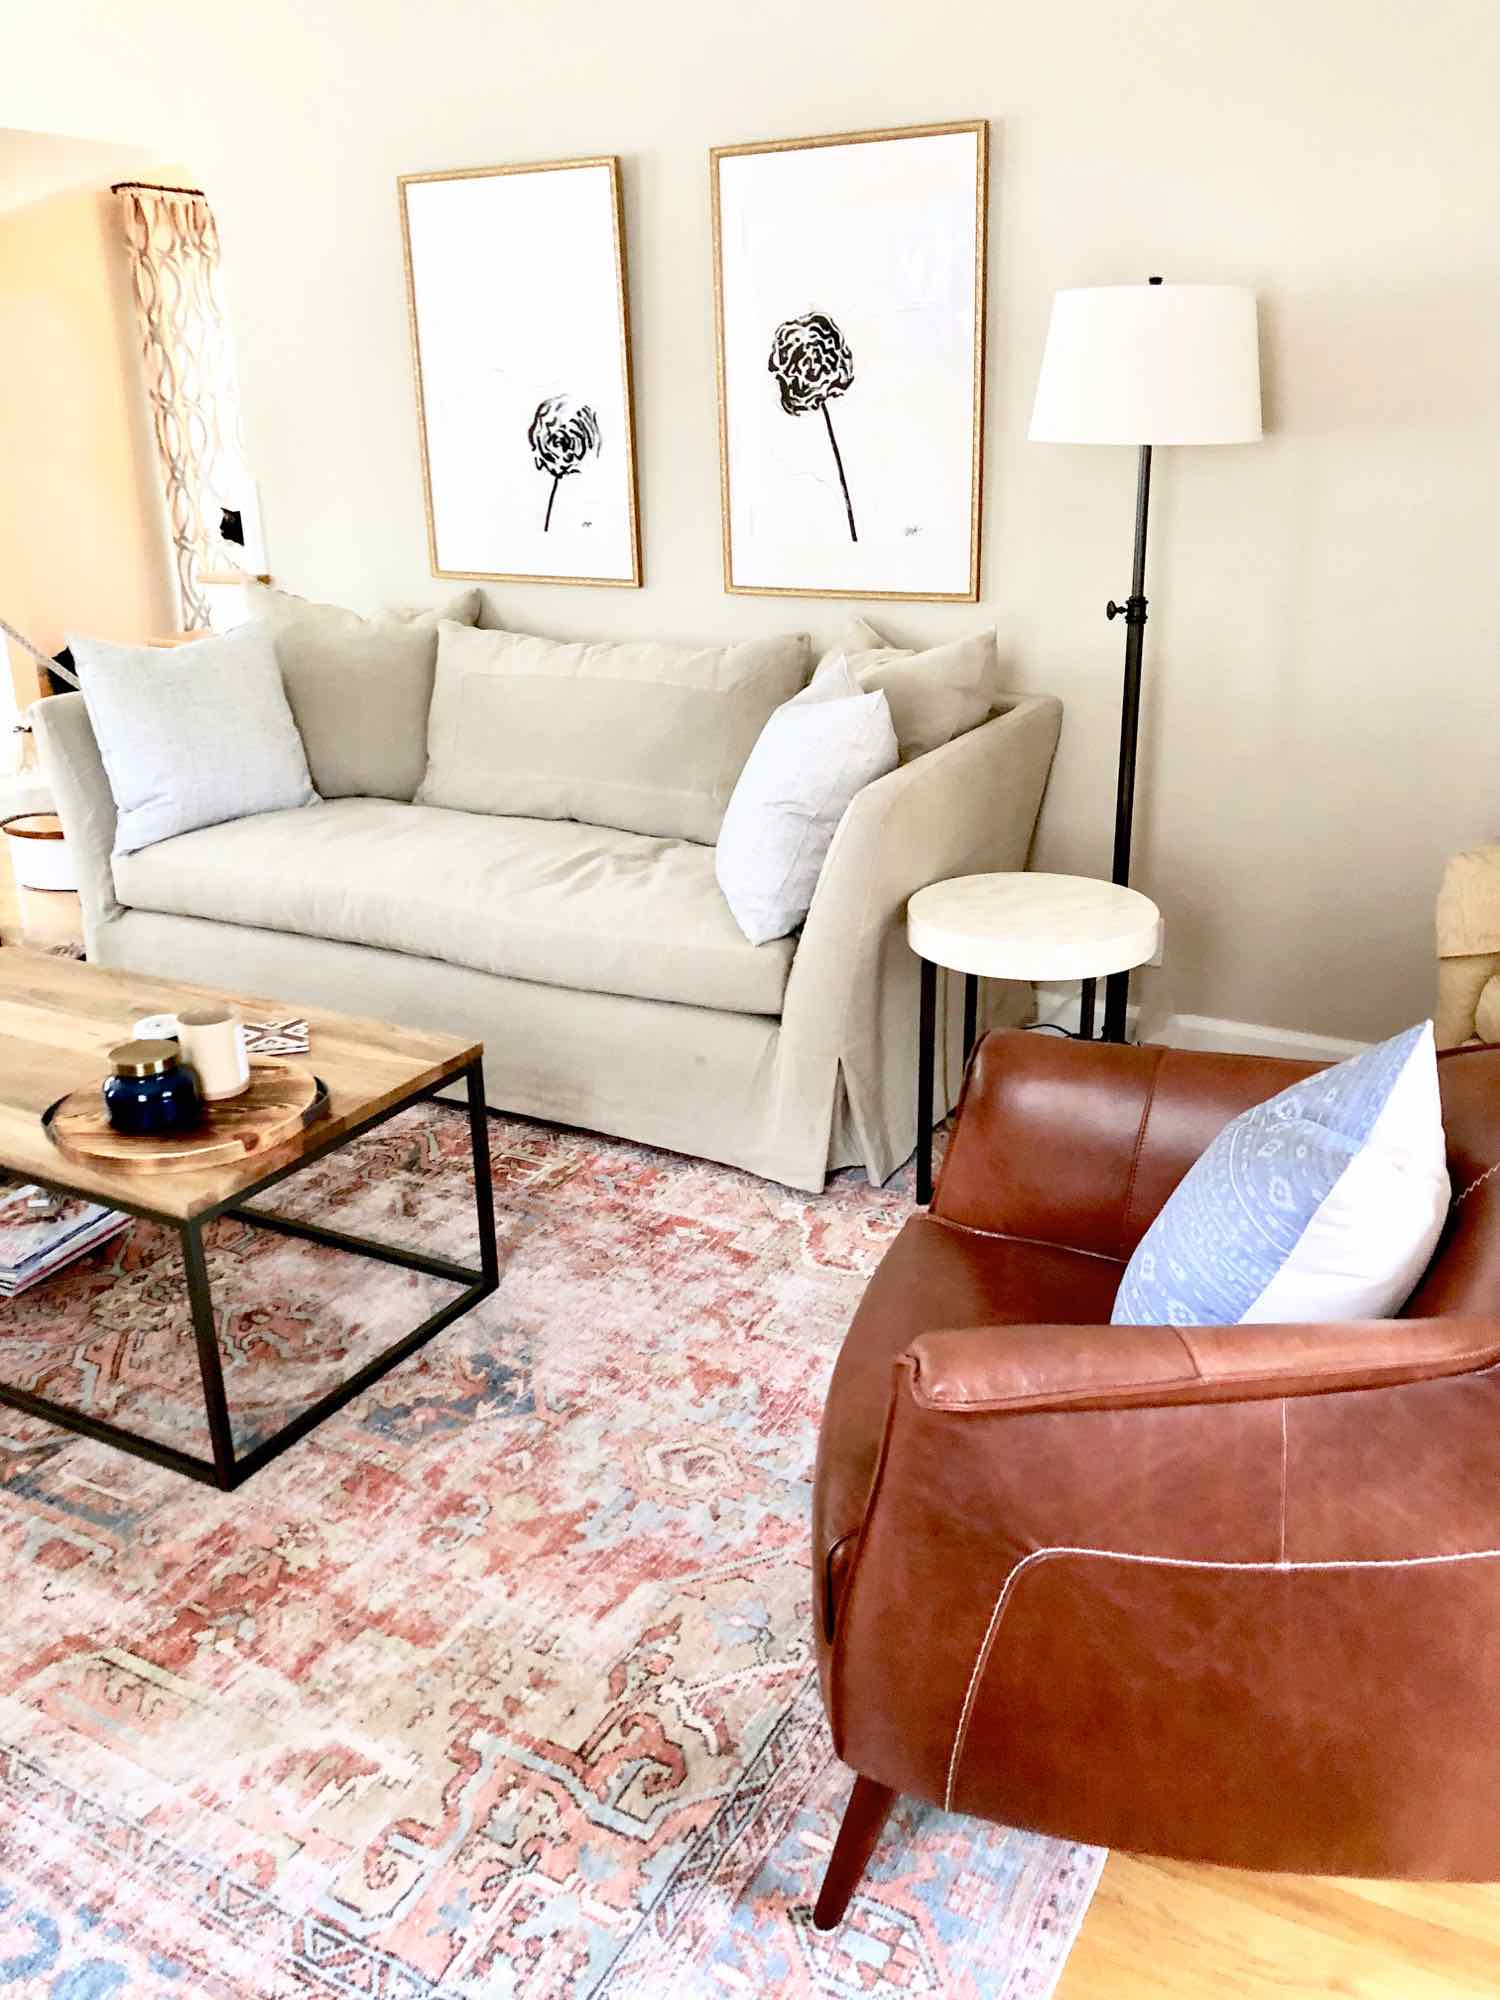 The Seda Sofa by Cisco Brothers in all it's creamy, natural linen glory!  Fabric is Mariet Natural.  This is the 7' length.  We opted to go the slipcover route -- but it can also be ordered upholstered.